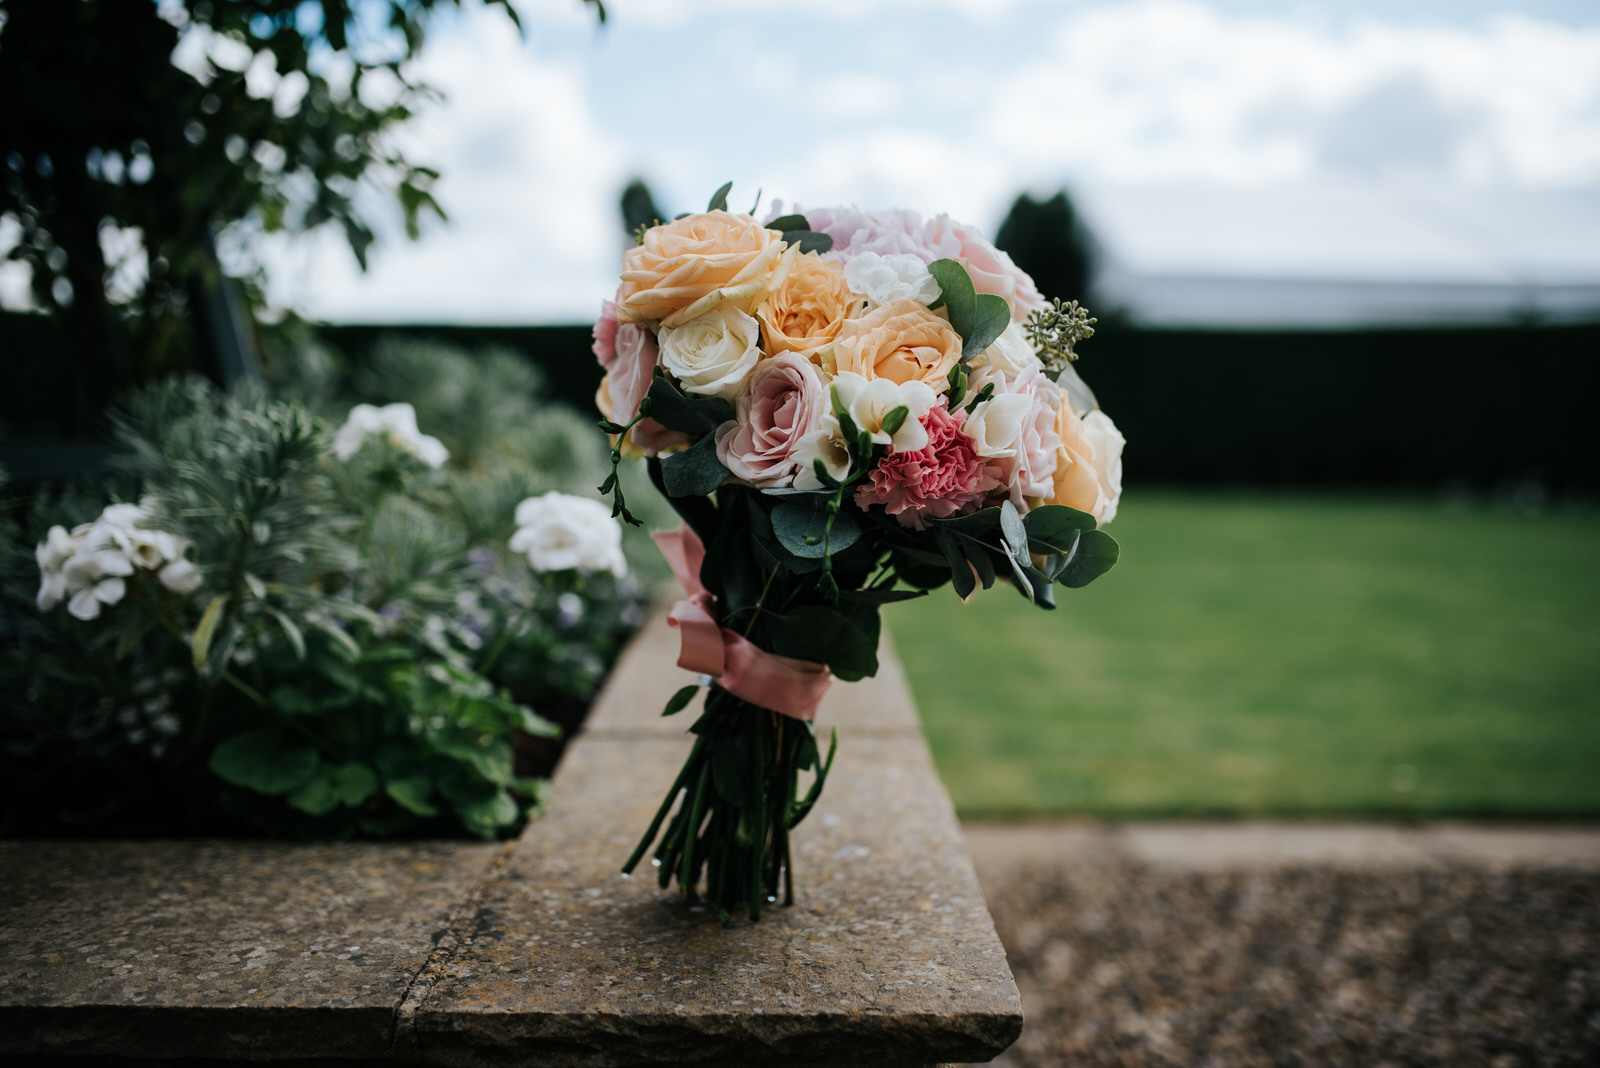 Bridal bouquet with beautiful roses